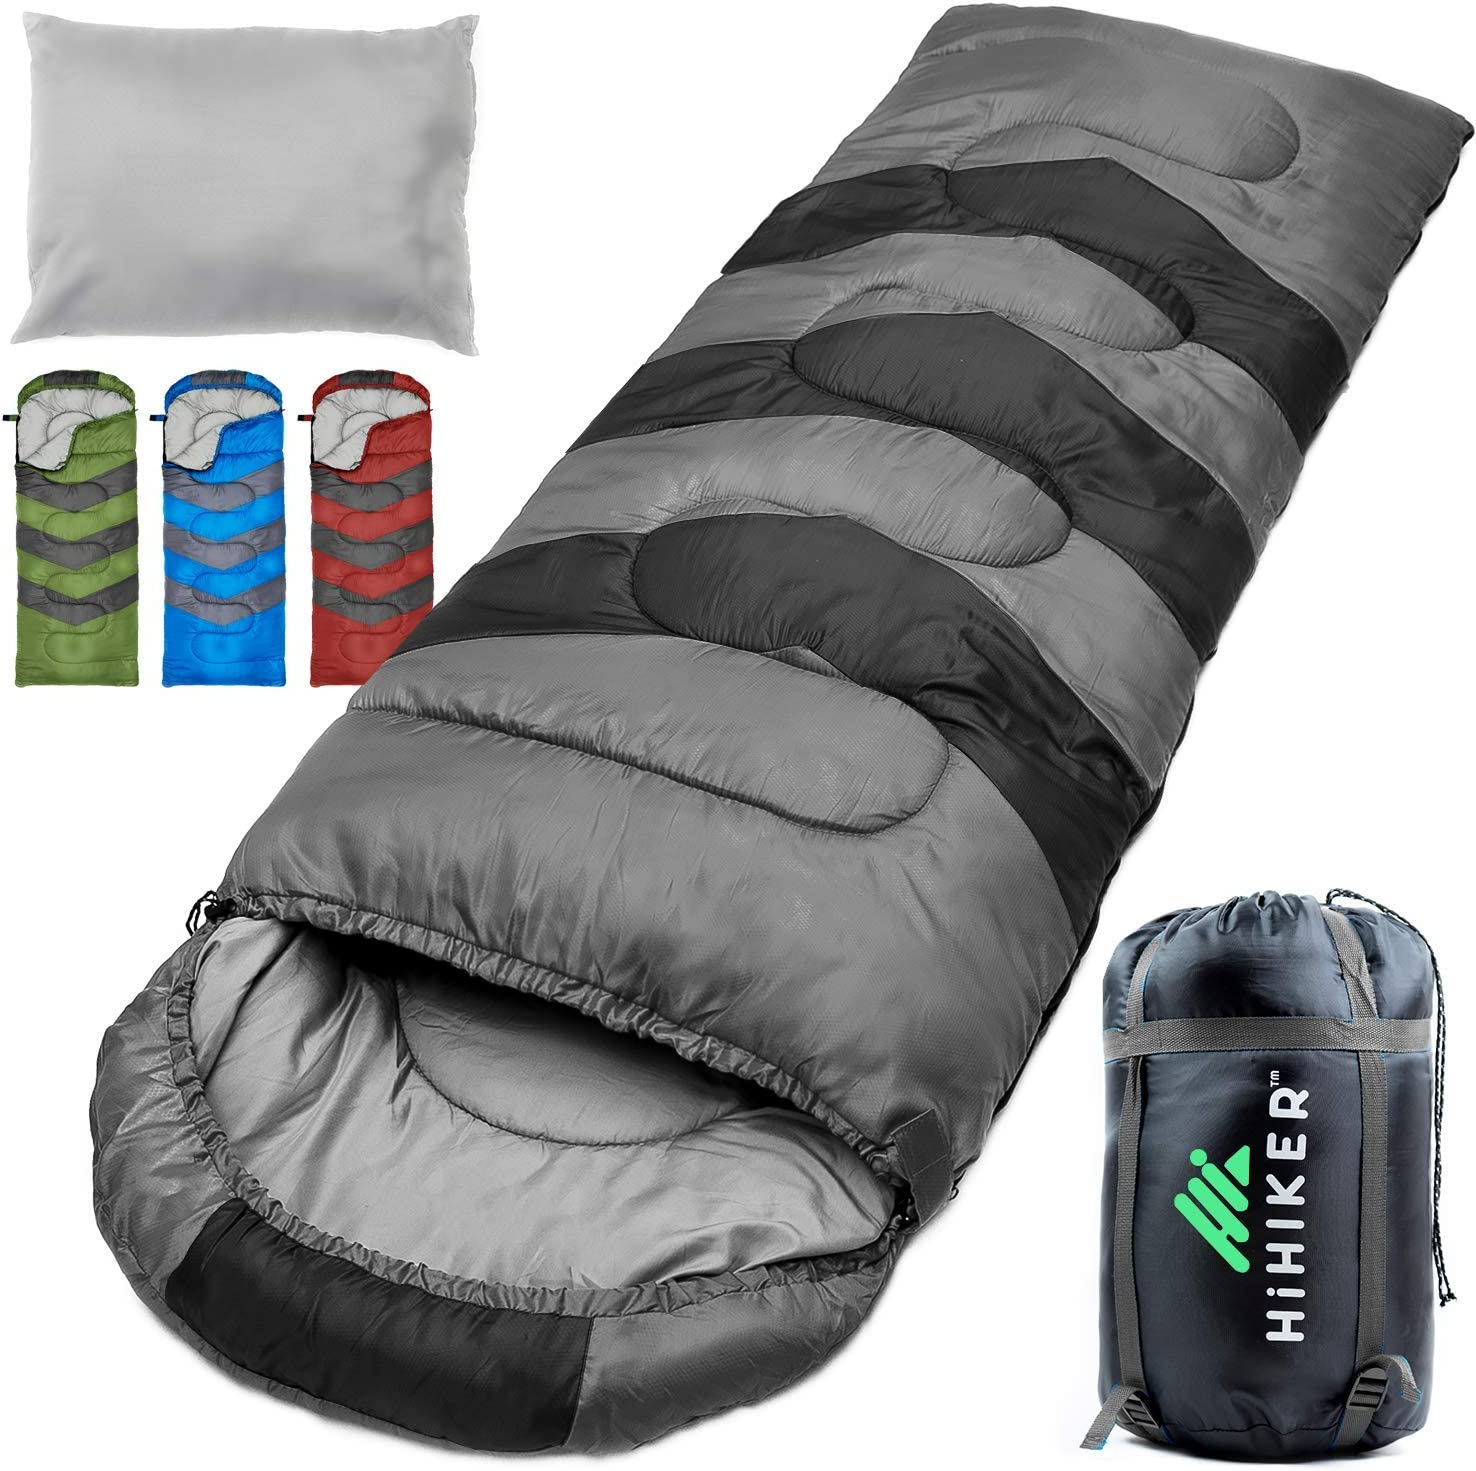 Lightweight Warm and Washable Travel Pillow w//Compact Compression Sack 4 Season Sleeping Bag for Adults /& Kids HiHiker Camping Sleeping Bag for Hiking Traveling.